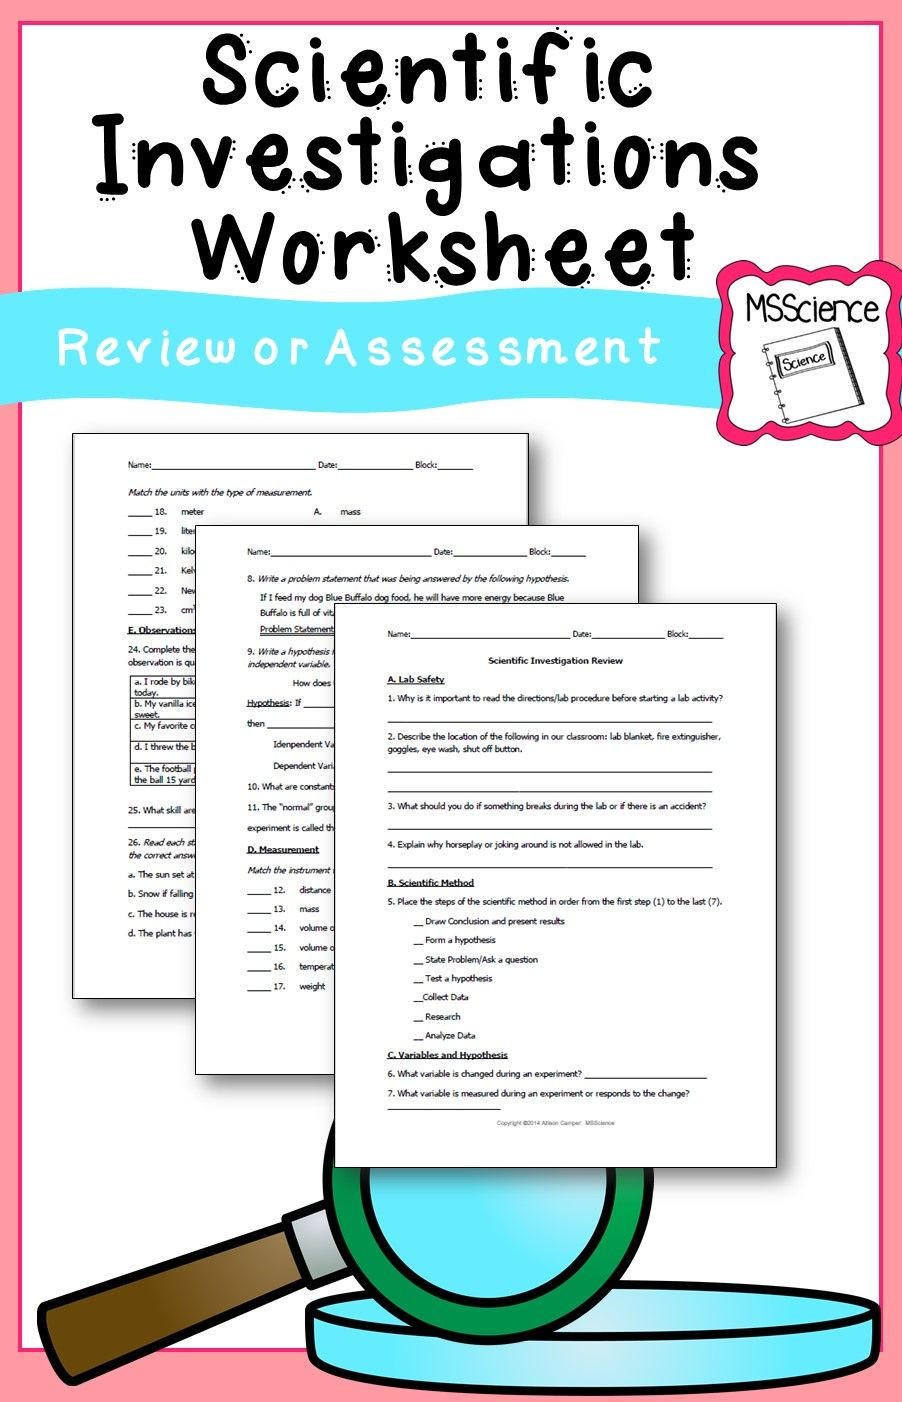 Scientific Method Worksheets High School Scientific Investigation Worksheet